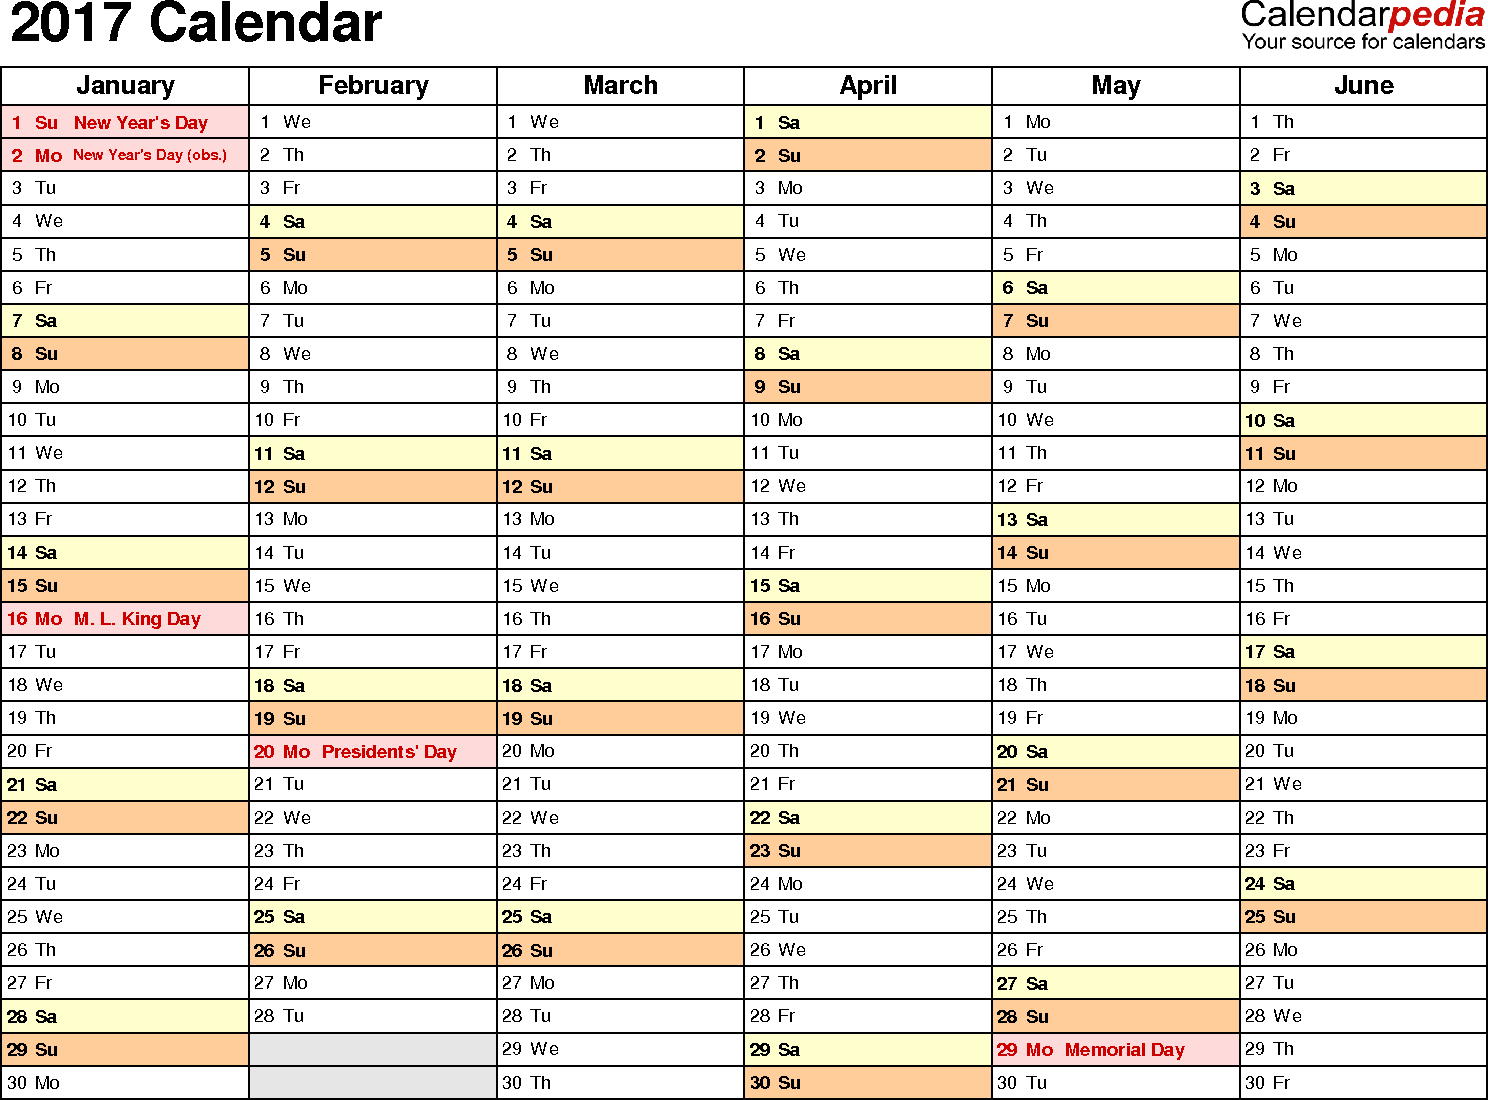 Ediblewildsus  Splendid  Calendar  Download  Free Printable Excel Templates Xls With Heavenly Template   Calendar For Excel Months Horizontally  Pages Landscape Orientation With Lovely Merge Excel Data Also Unlock Excel Spreadsheet Macro In Addition Most Recent Version Of Excel And Vba Excel  Tutorial As Well As Excel Analysis Toolpak Mac  Additionally Excel Convert Minutes To Hours And Minutes From Calendarpediacom With Ediblewildsus  Heavenly  Calendar  Download  Free Printable Excel Templates Xls With Lovely Template   Calendar For Excel Months Horizontally  Pages Landscape Orientation And Splendid Merge Excel Data Also Unlock Excel Spreadsheet Macro In Addition Most Recent Version Of Excel From Calendarpediacom